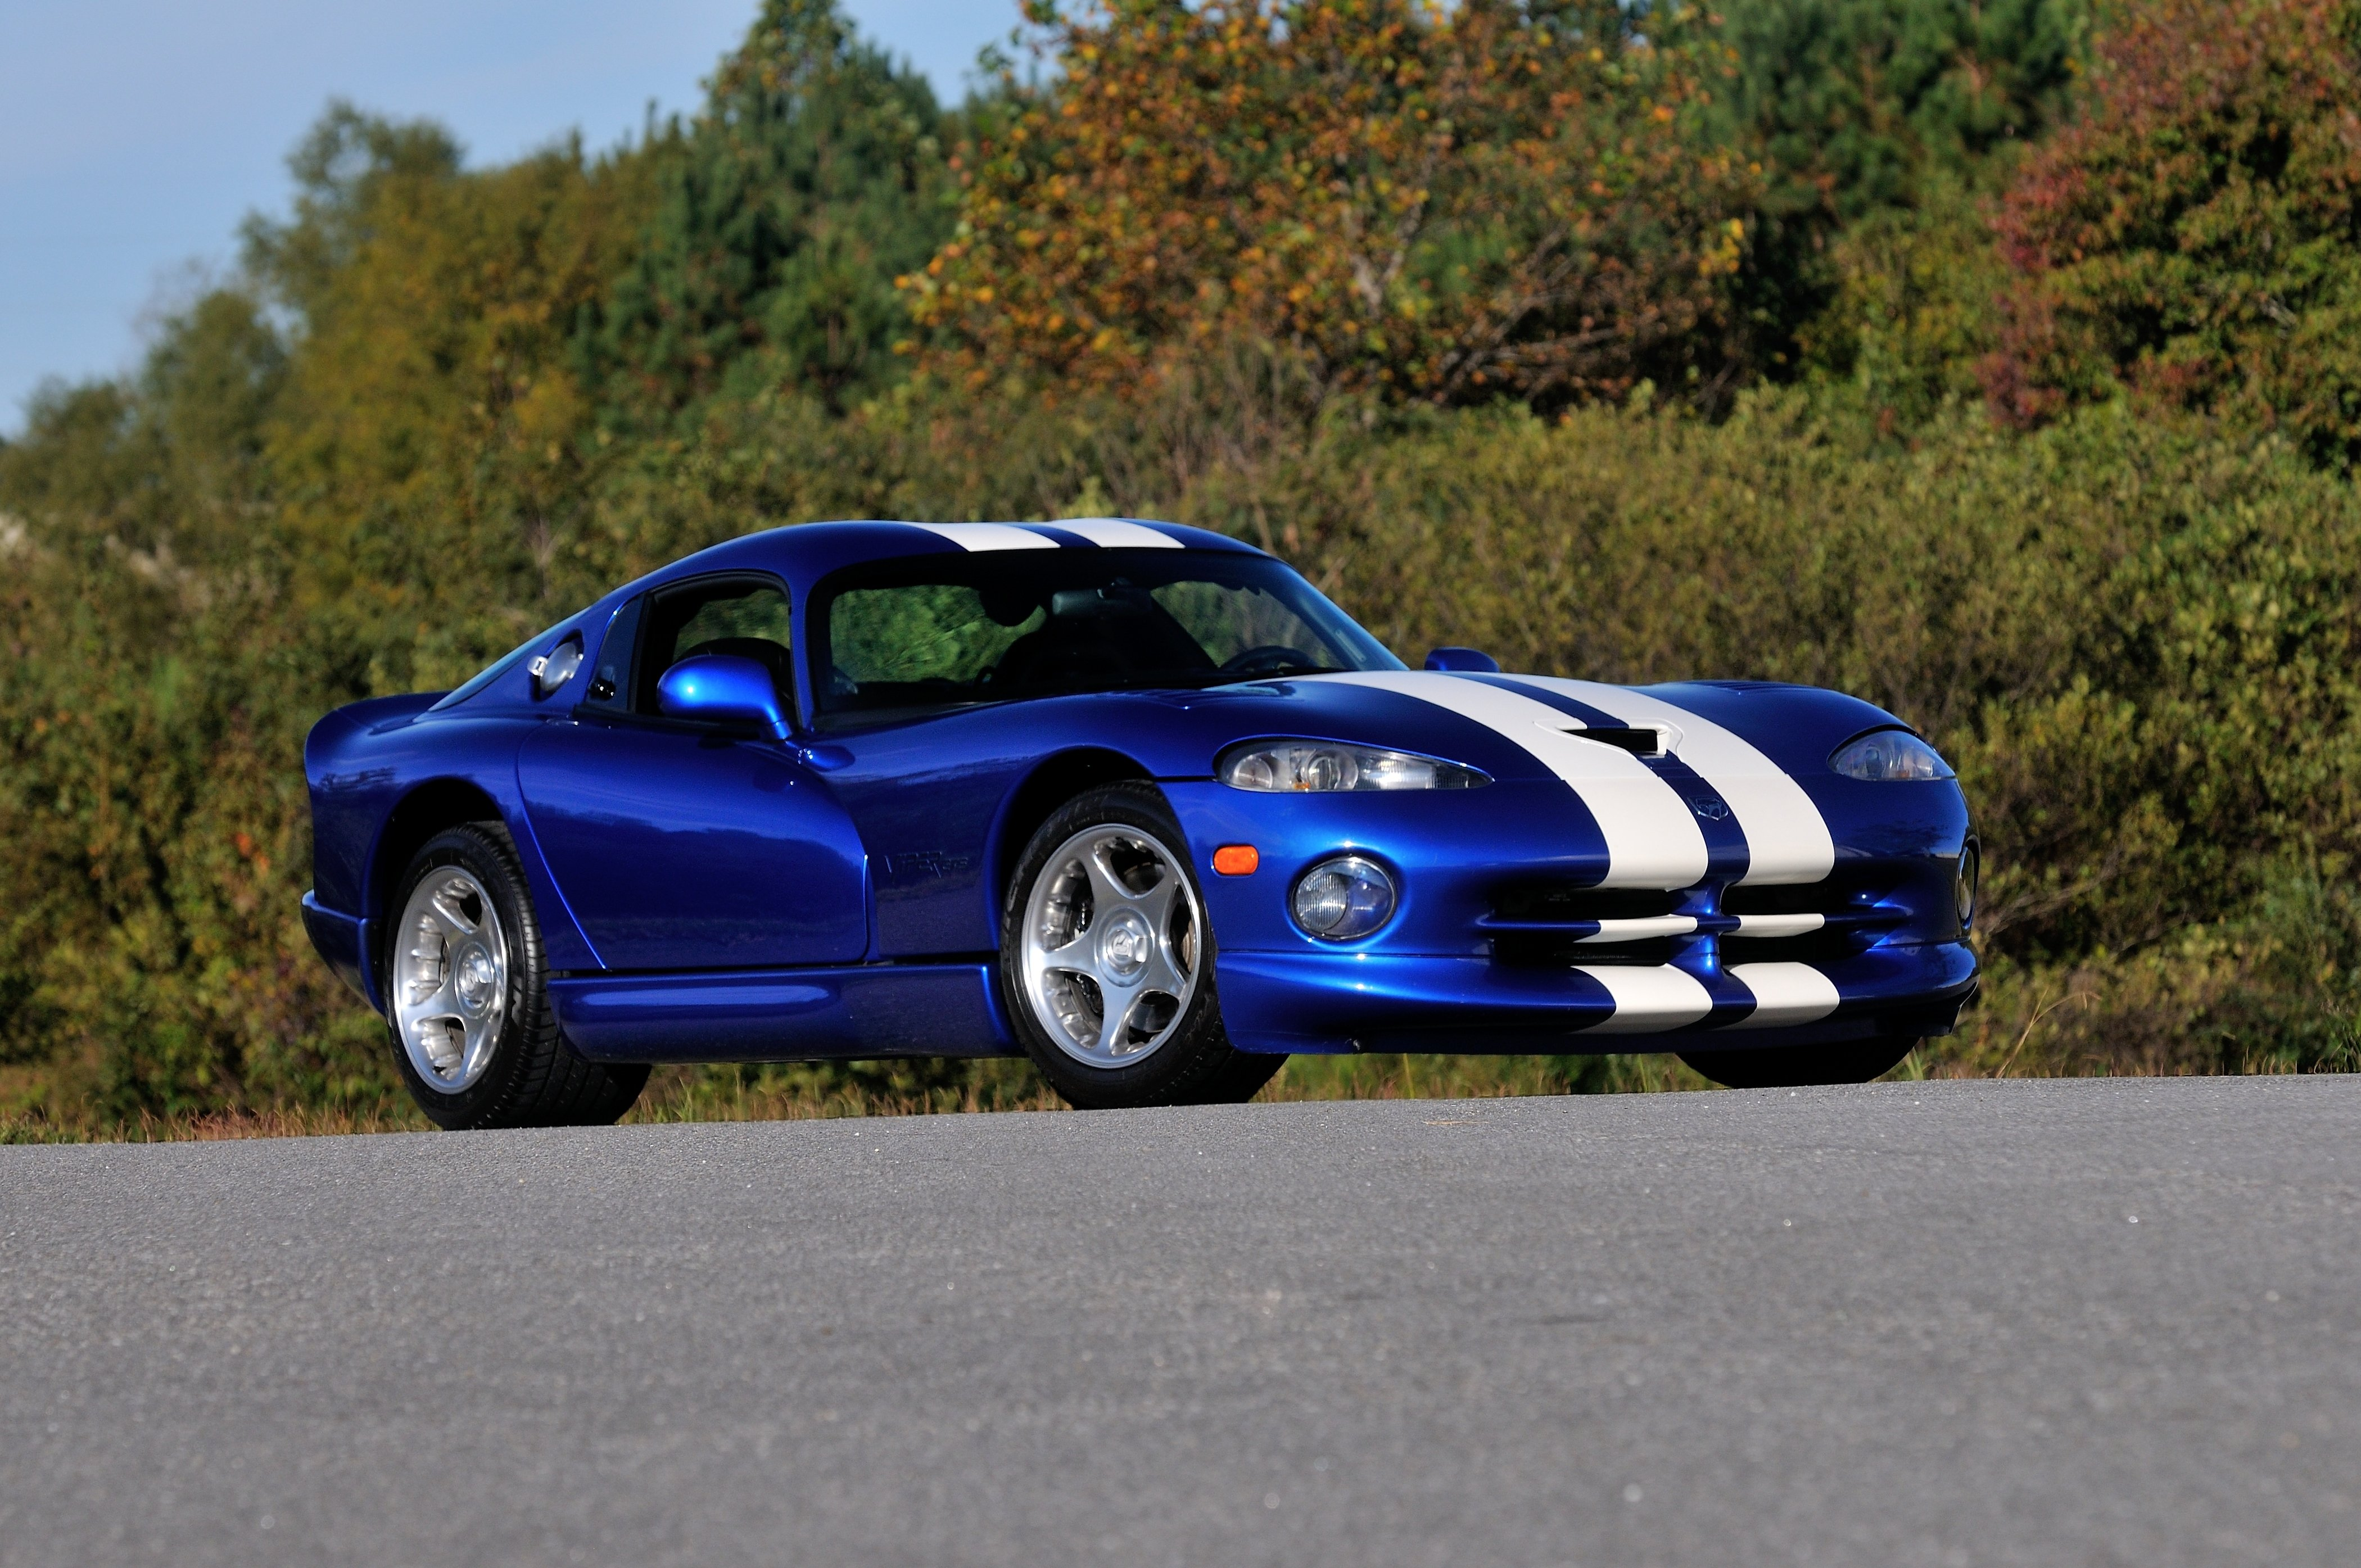 1996 dodge viper gts coupe muscle supercar usa 4200x2790 05 wallpaper 4200x2790 656922. Black Bedroom Furniture Sets. Home Design Ideas